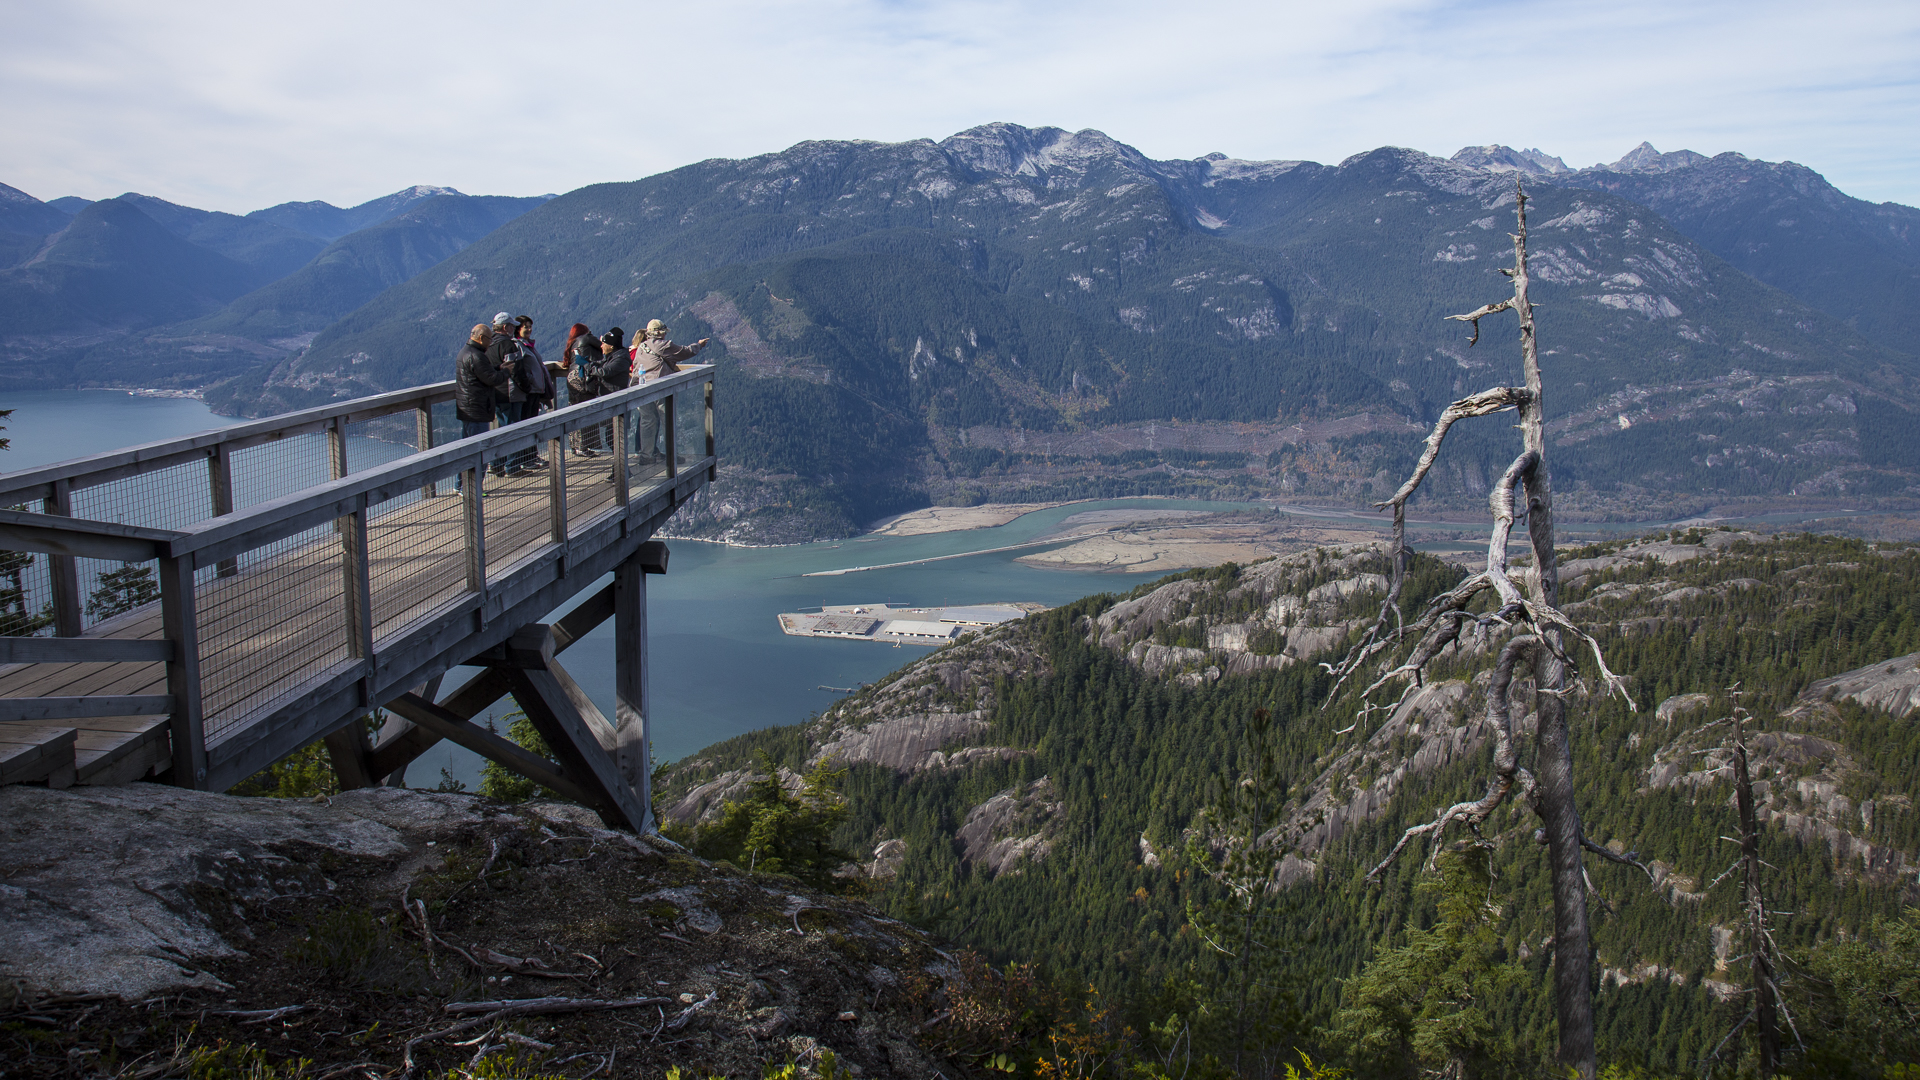 One of the lookouts, with a view down to the Chief and Squamish.